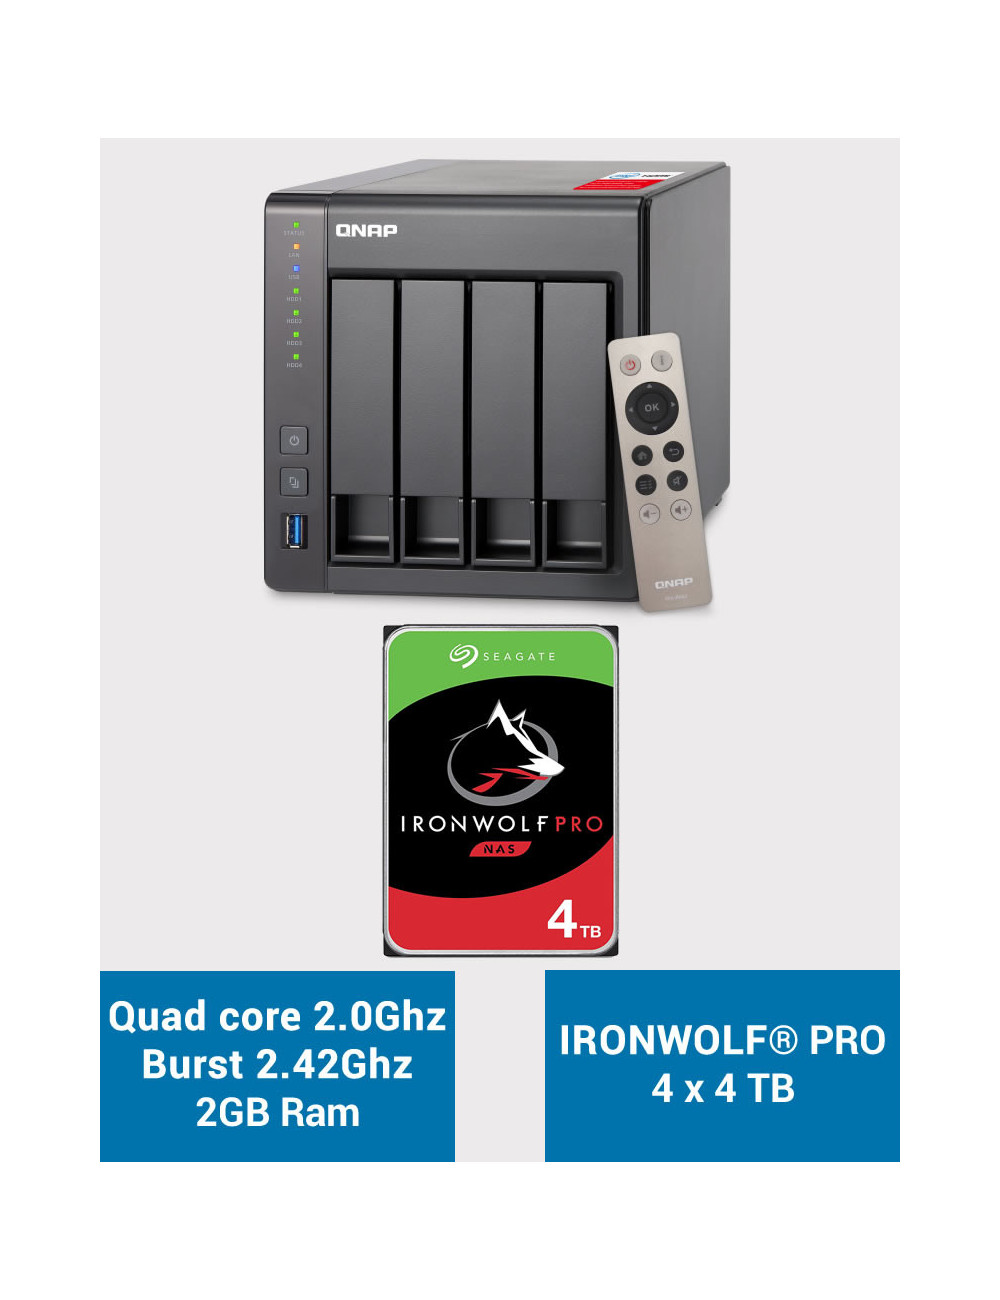 QNAP TS-451+ 2Go Serveur NAS IRONWOLF PRO 16To (4x4To)